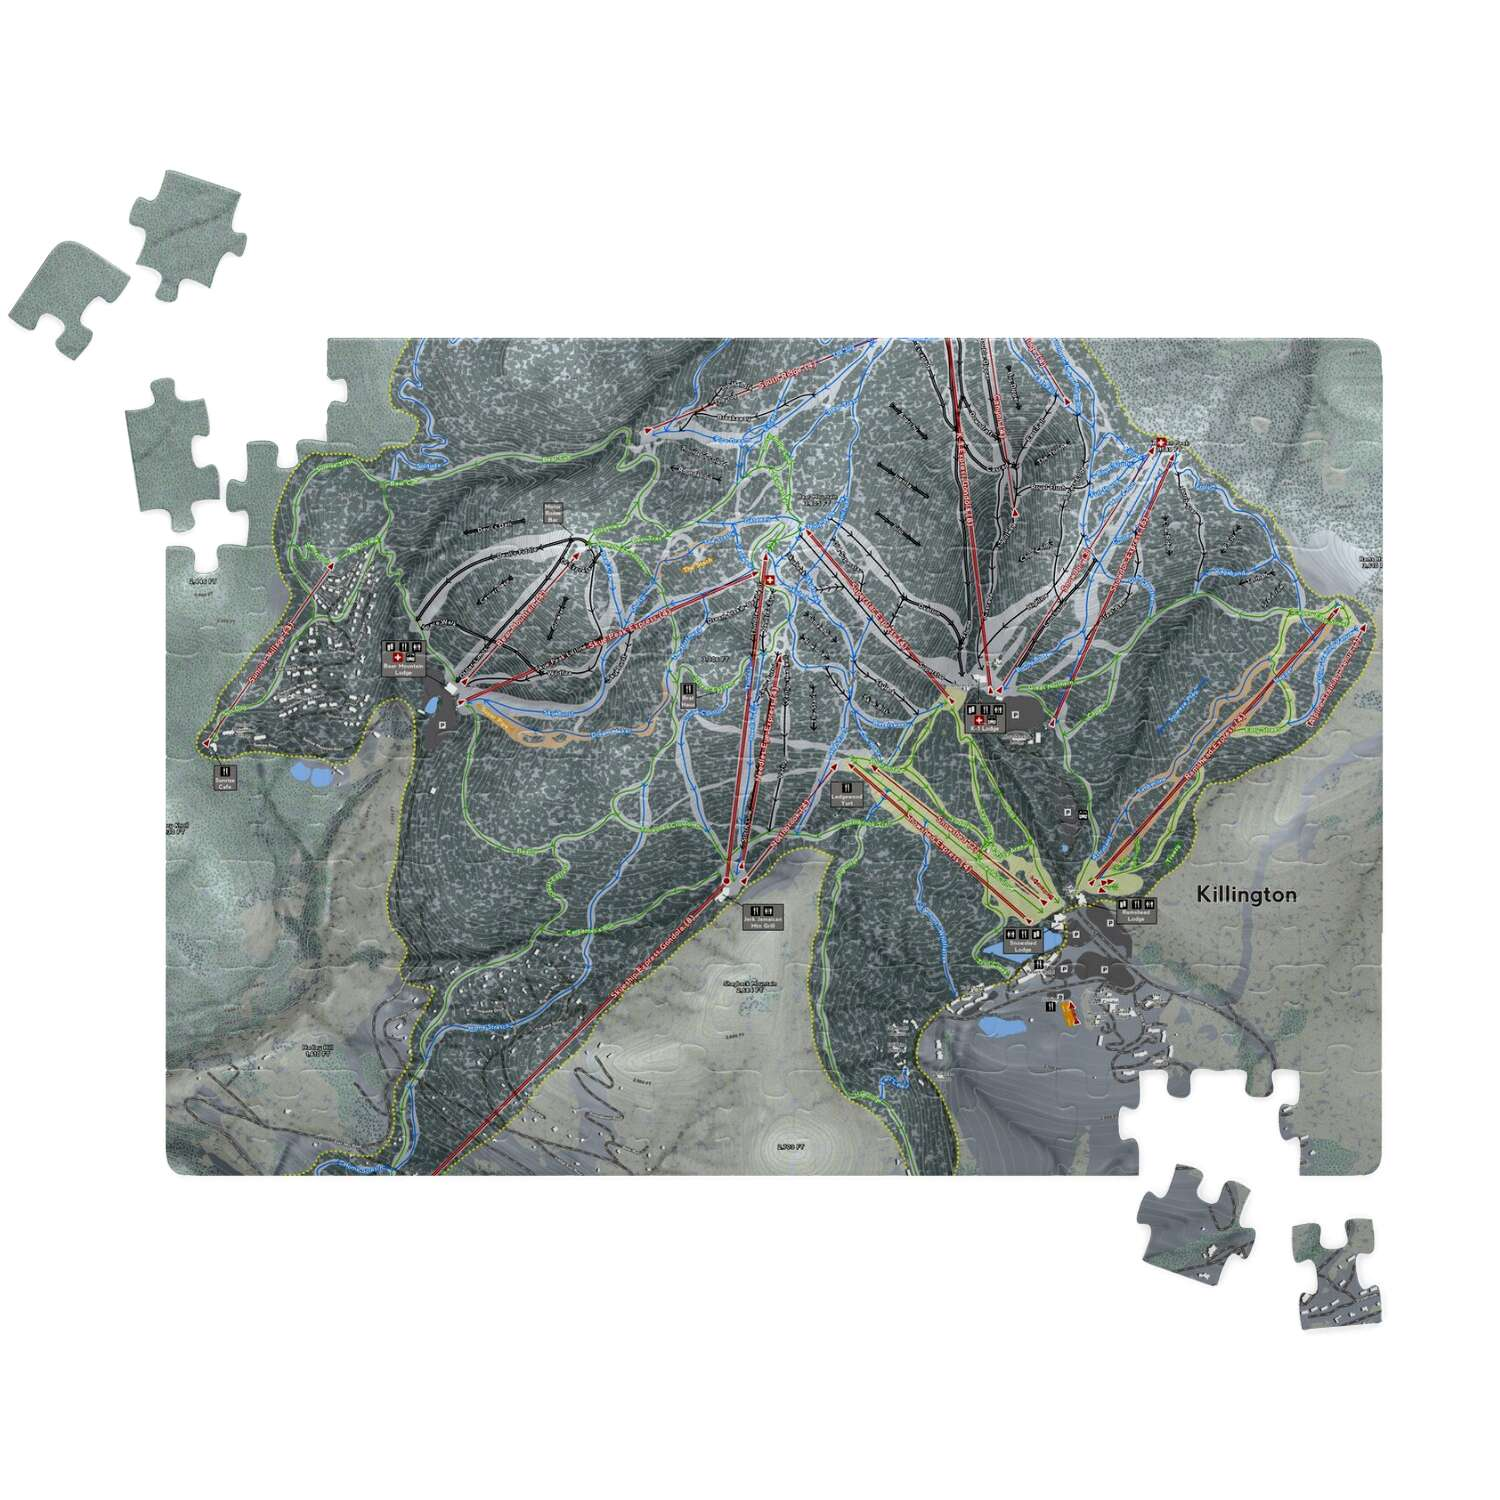 Killington Vermont Ski Resort Map Puzzle